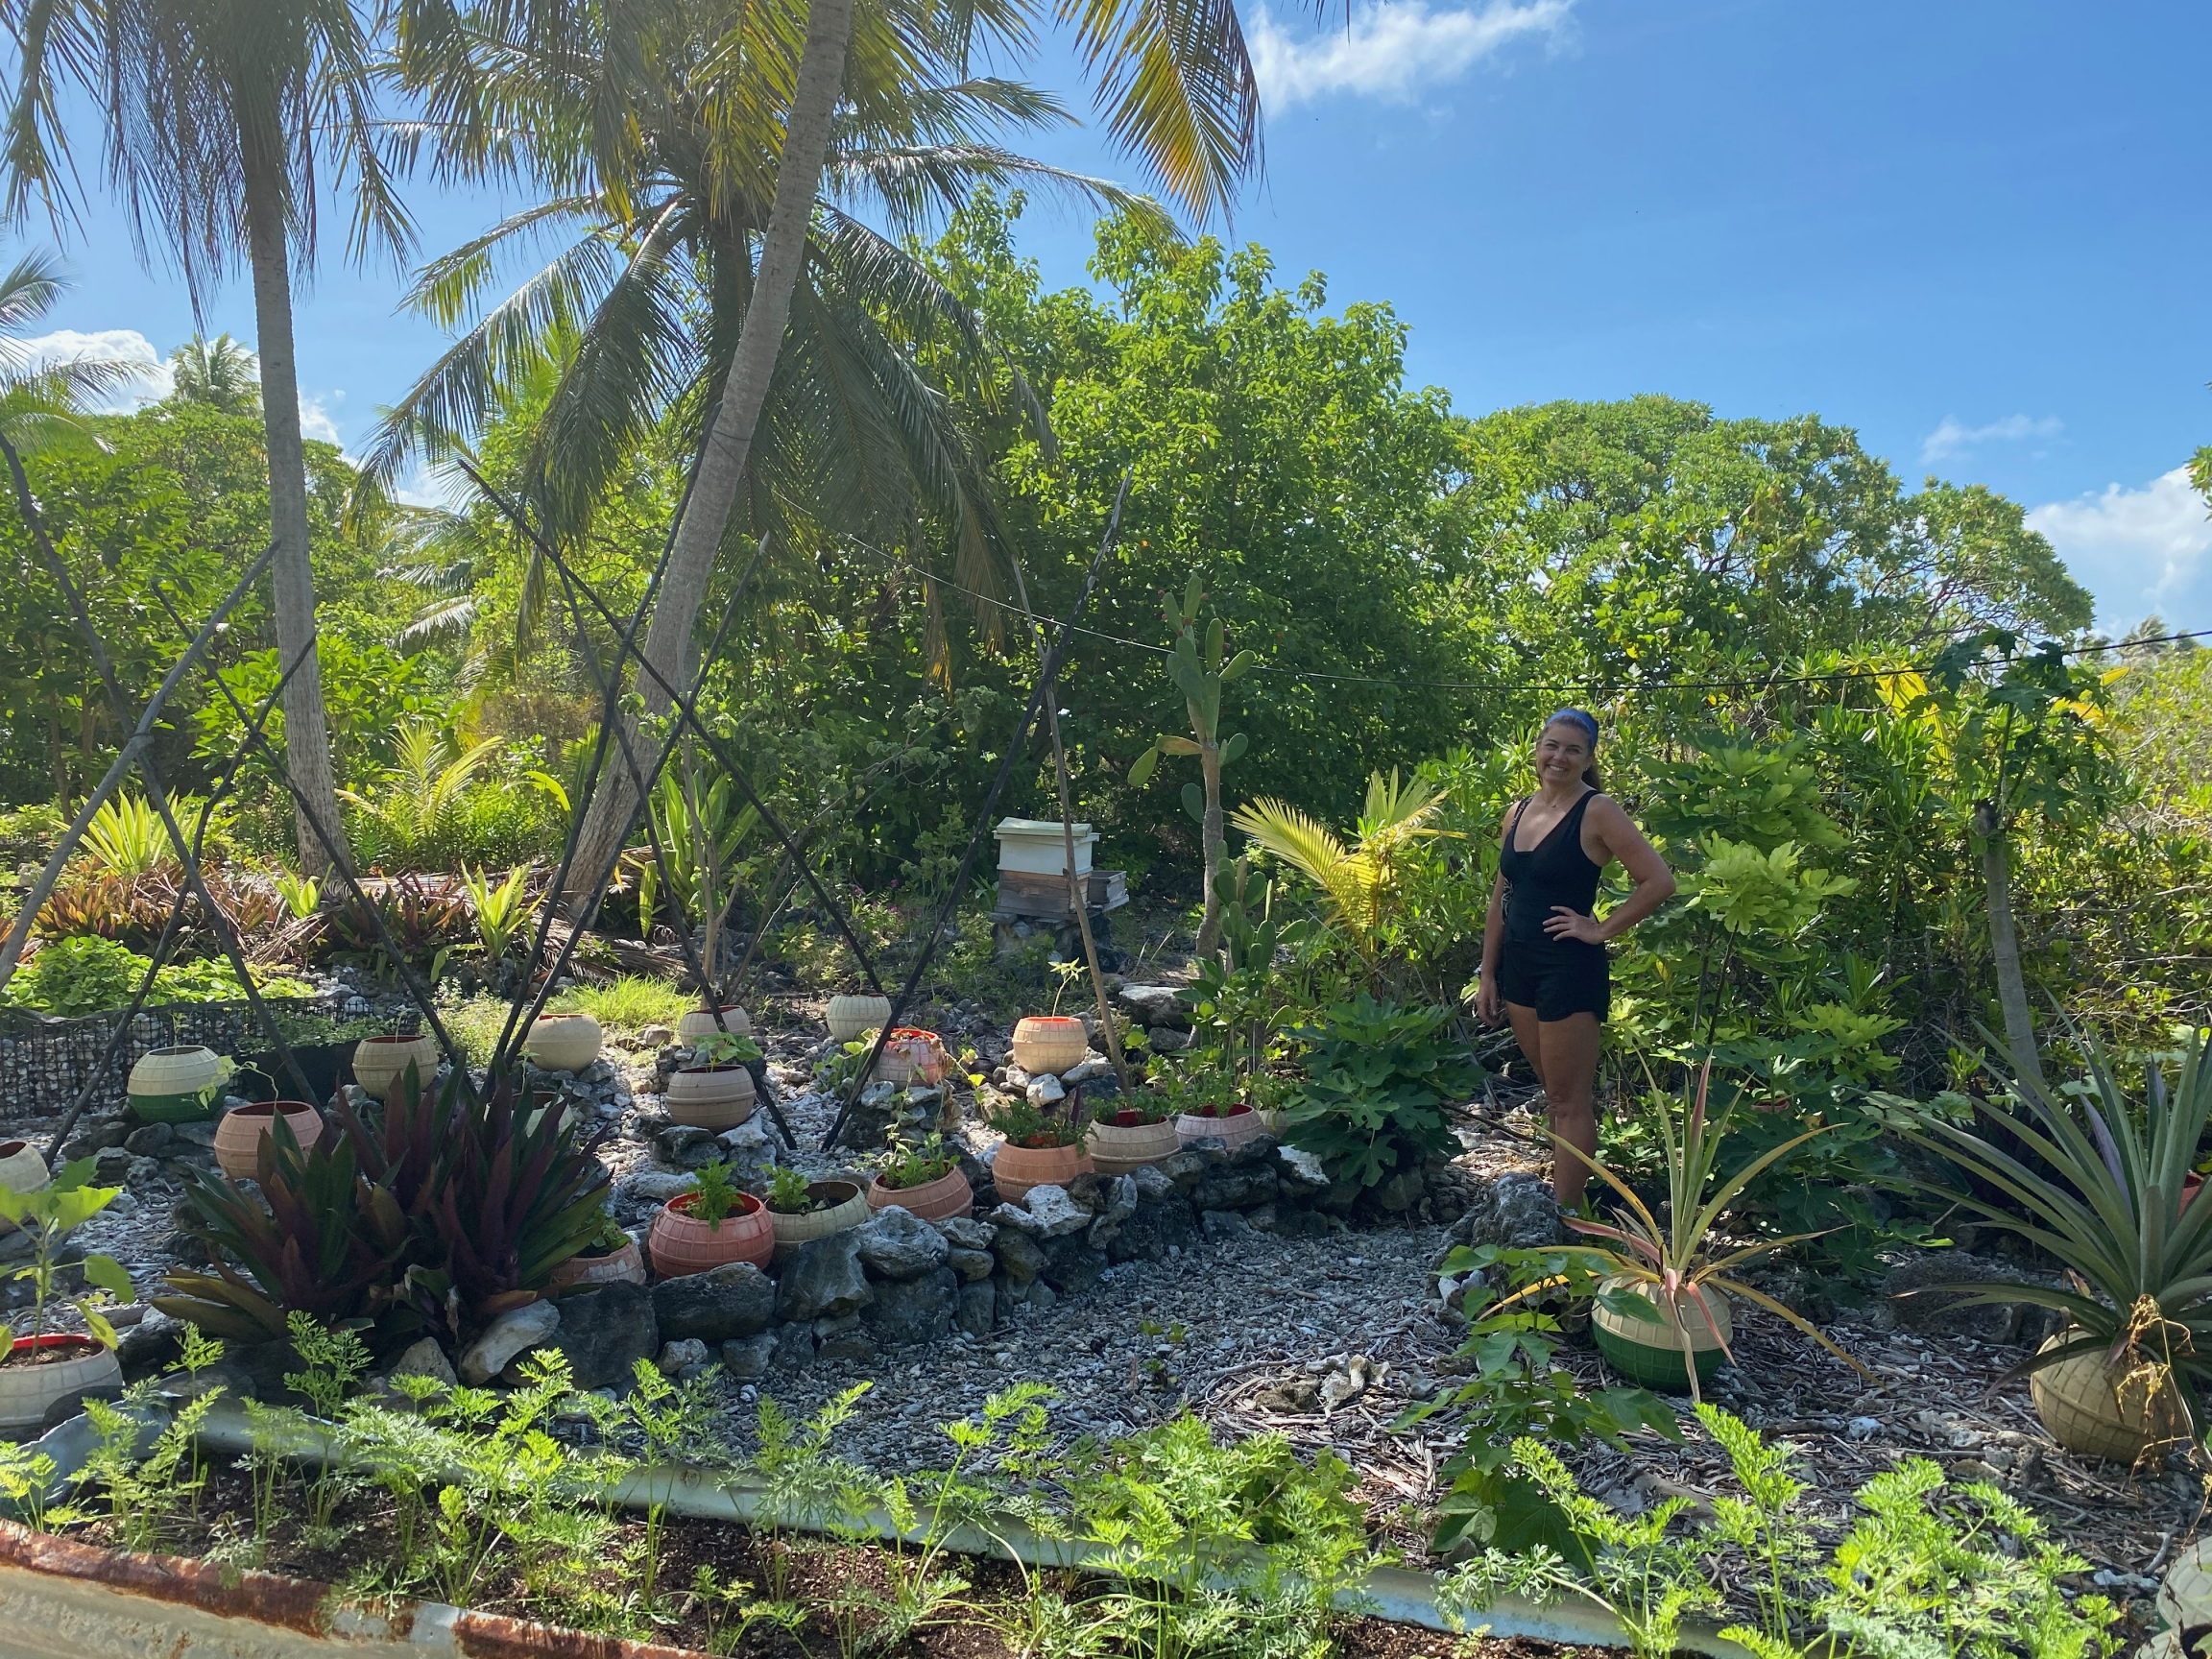 Kamoka Pearl co-owner Celeste Brash stands in front of a portion of the large garden that helps feedthe farm crew. In soil made from bird droppings and coconut husks, they're attempting to grow everything from arugula and pineapples to taro and carrots i